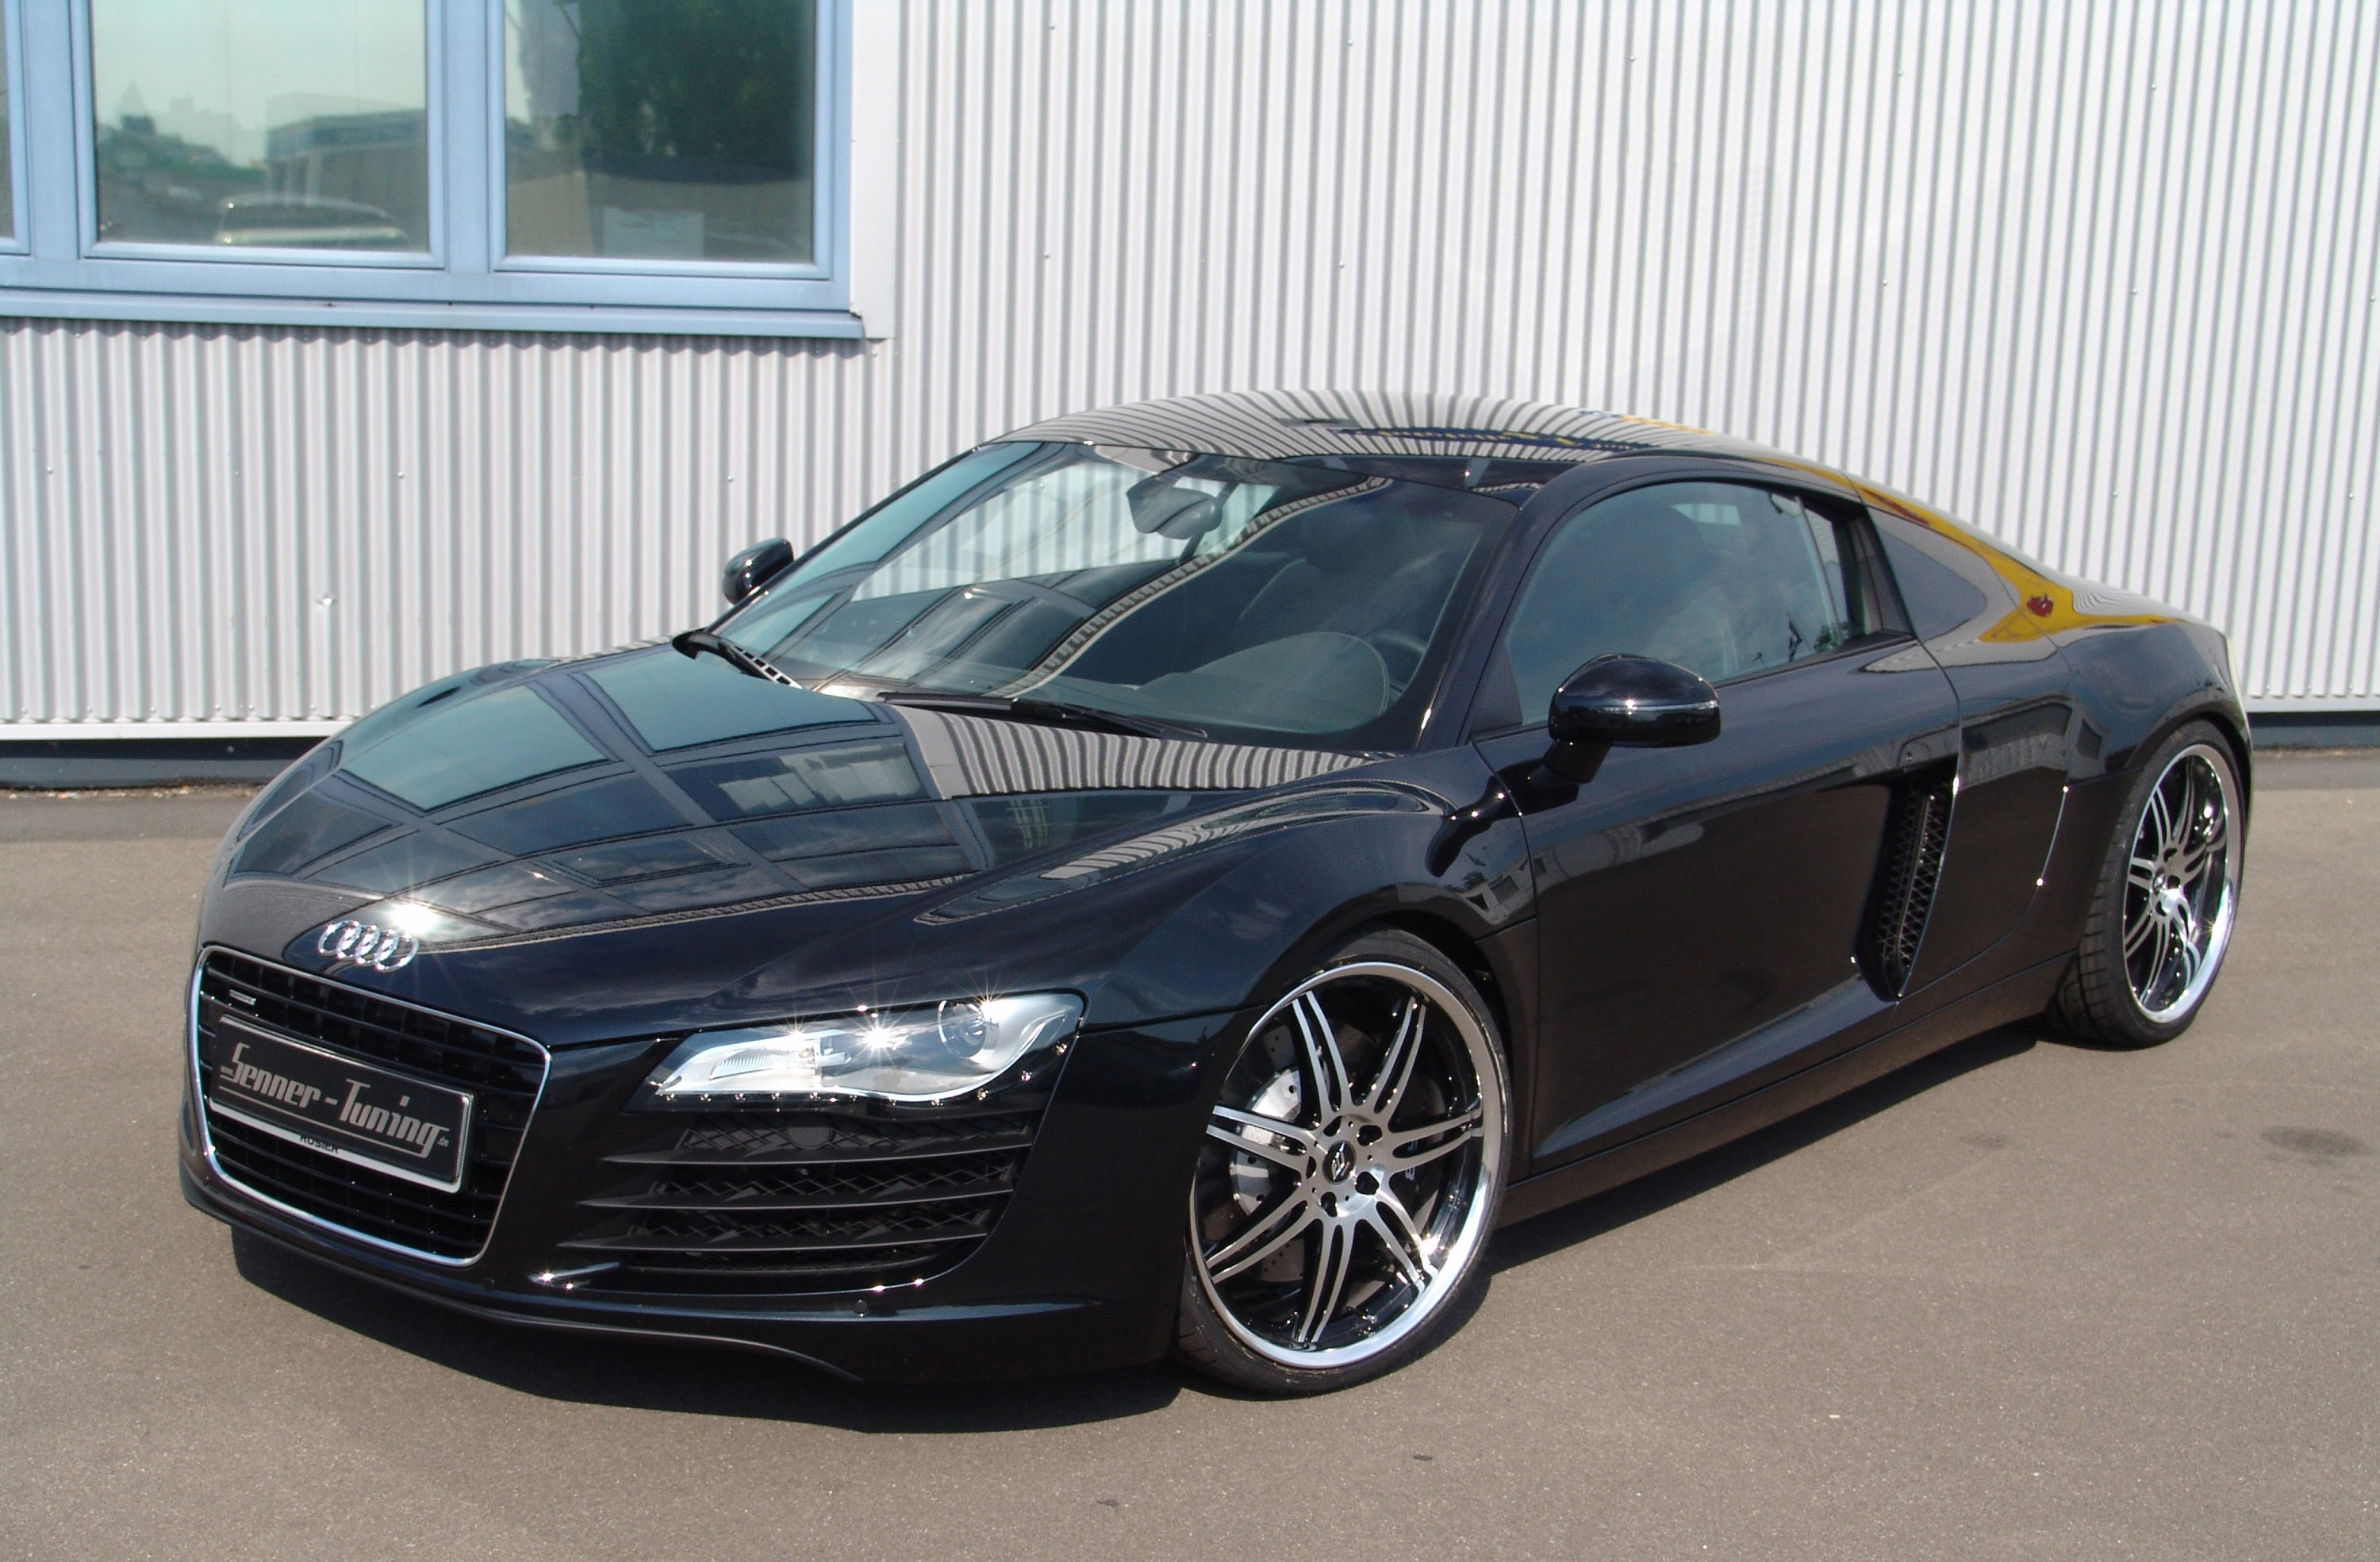 audi r8 super sport concept by senner tuning. Black Bedroom Furniture Sets. Home Design Ideas